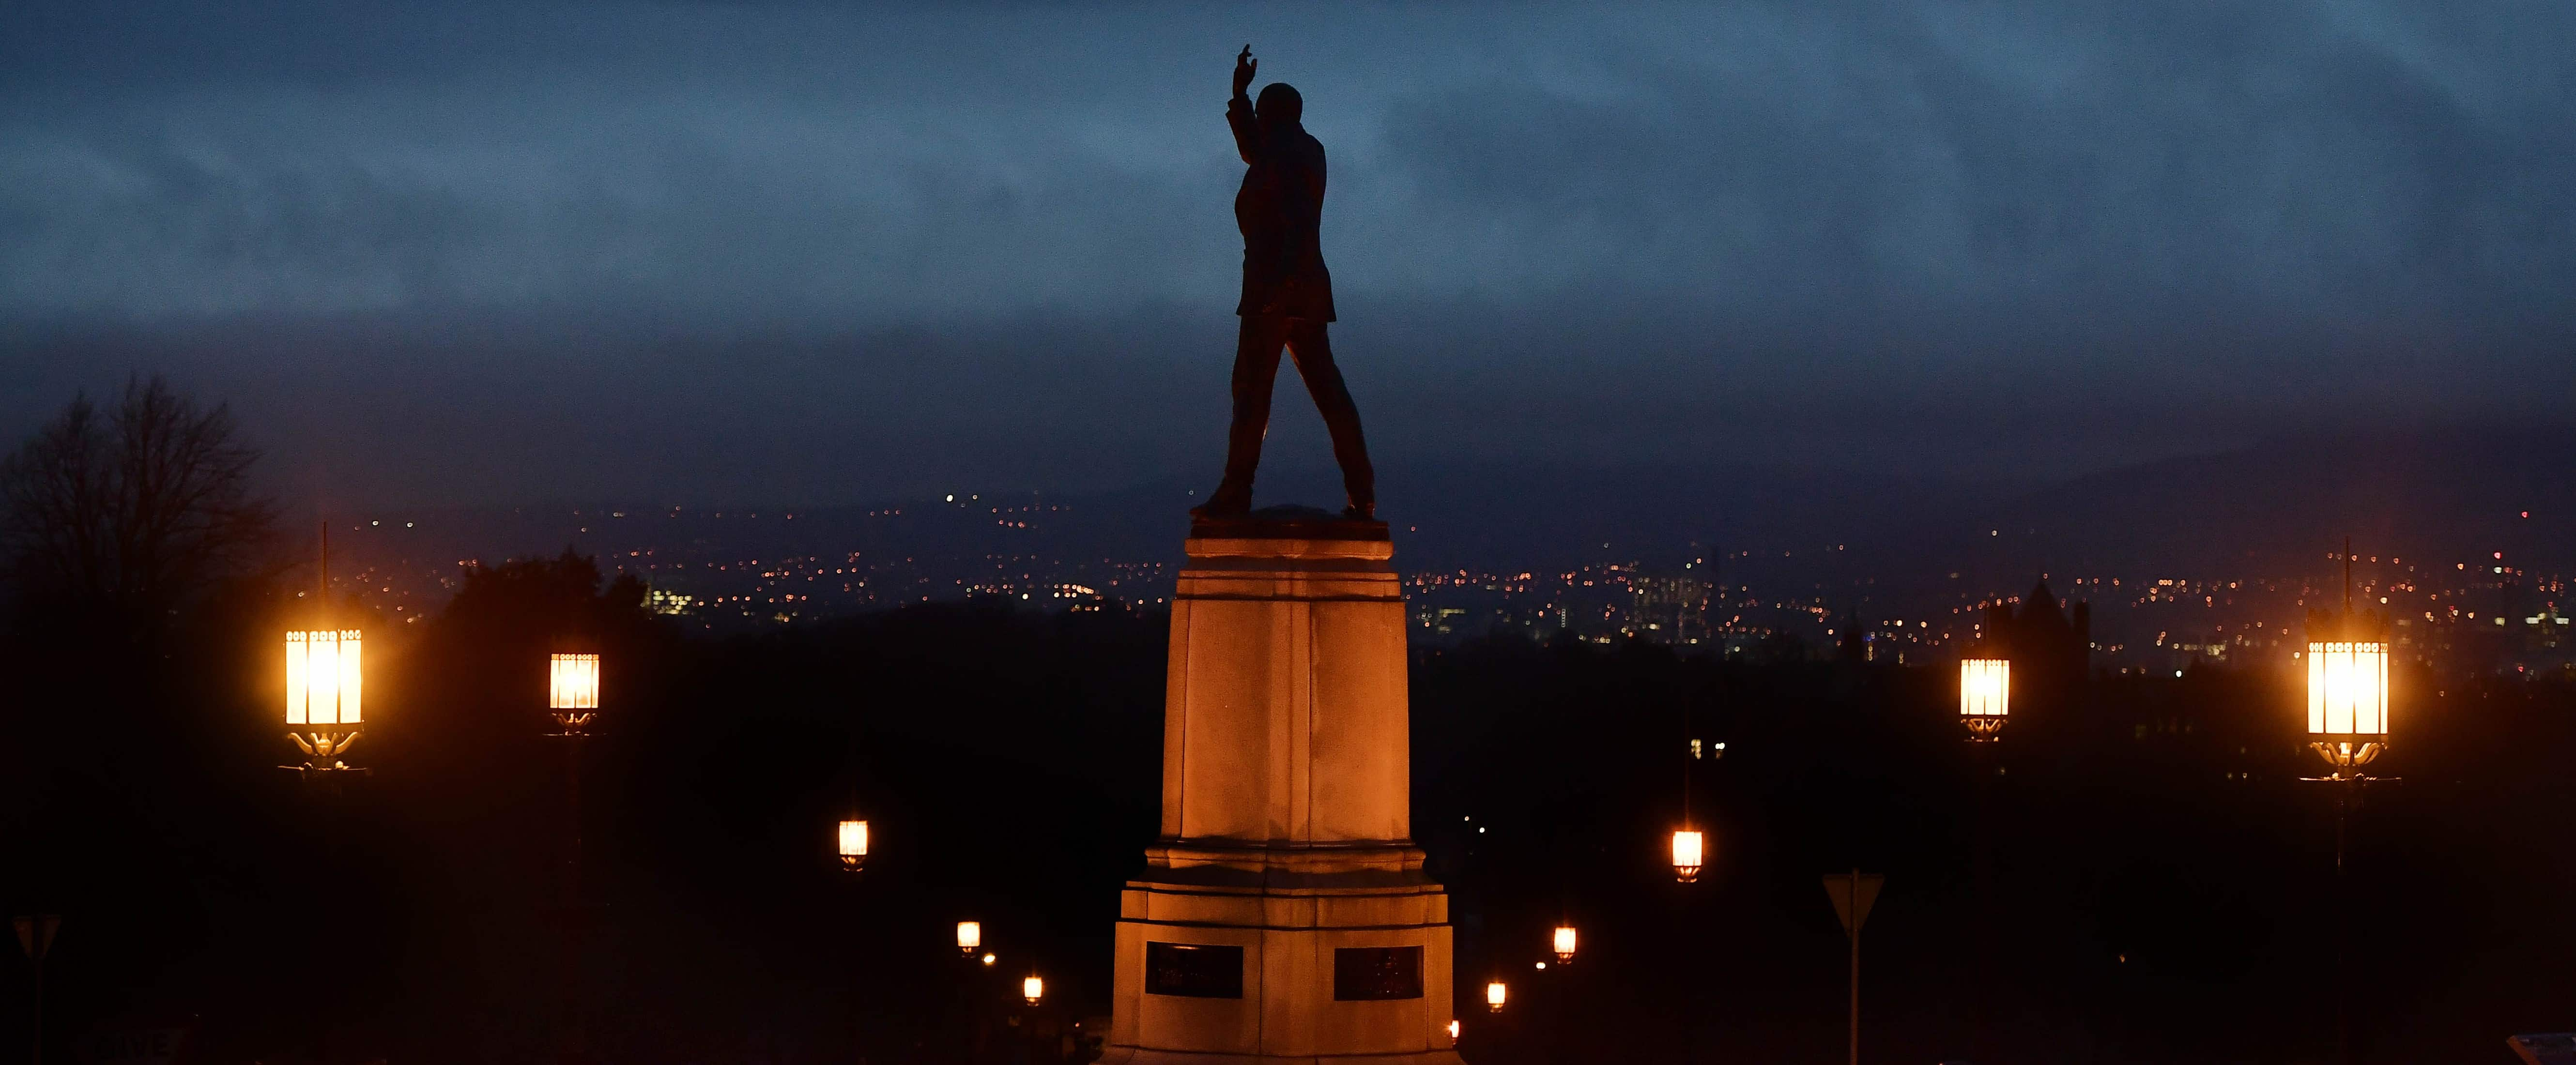 The sun settng on a statue of Edward Carson, a prominent unionist, in Belfast, Northern Ireland, Jauary 2017 (Photo: Getty Images/Charles McQuillan)